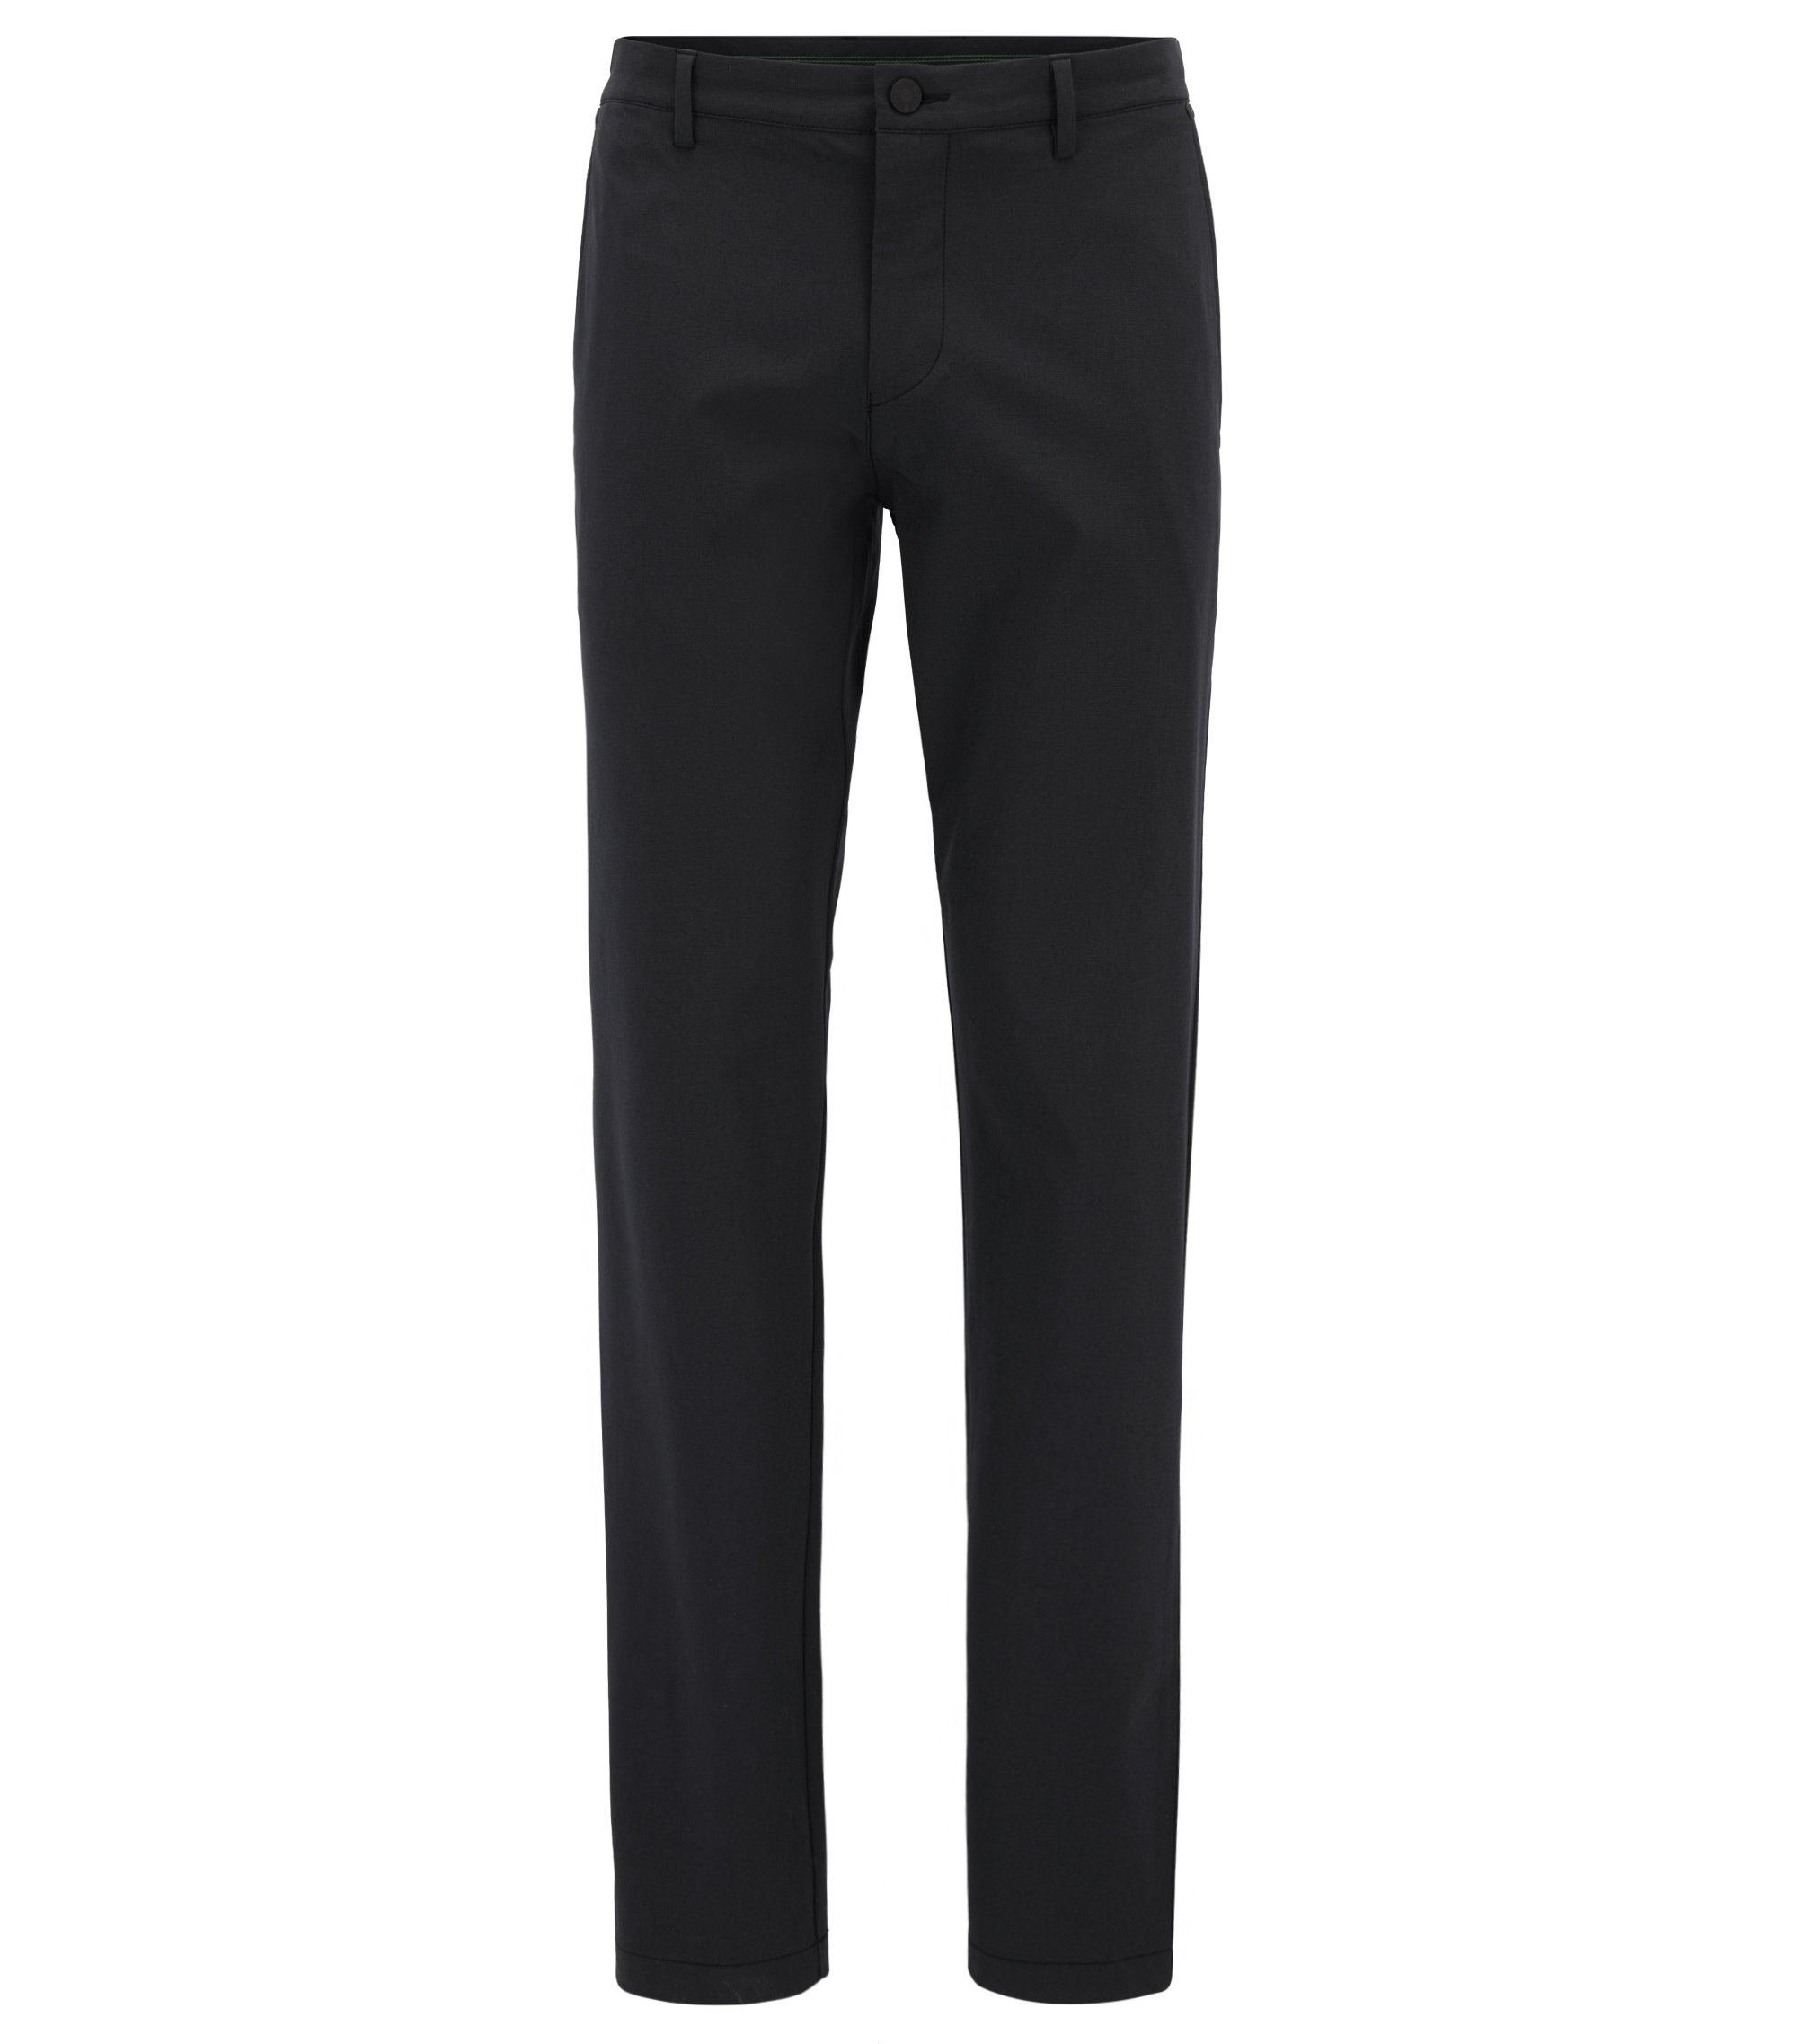 Pantalon Extra Slim Fit en tissu technique stretch, Noir